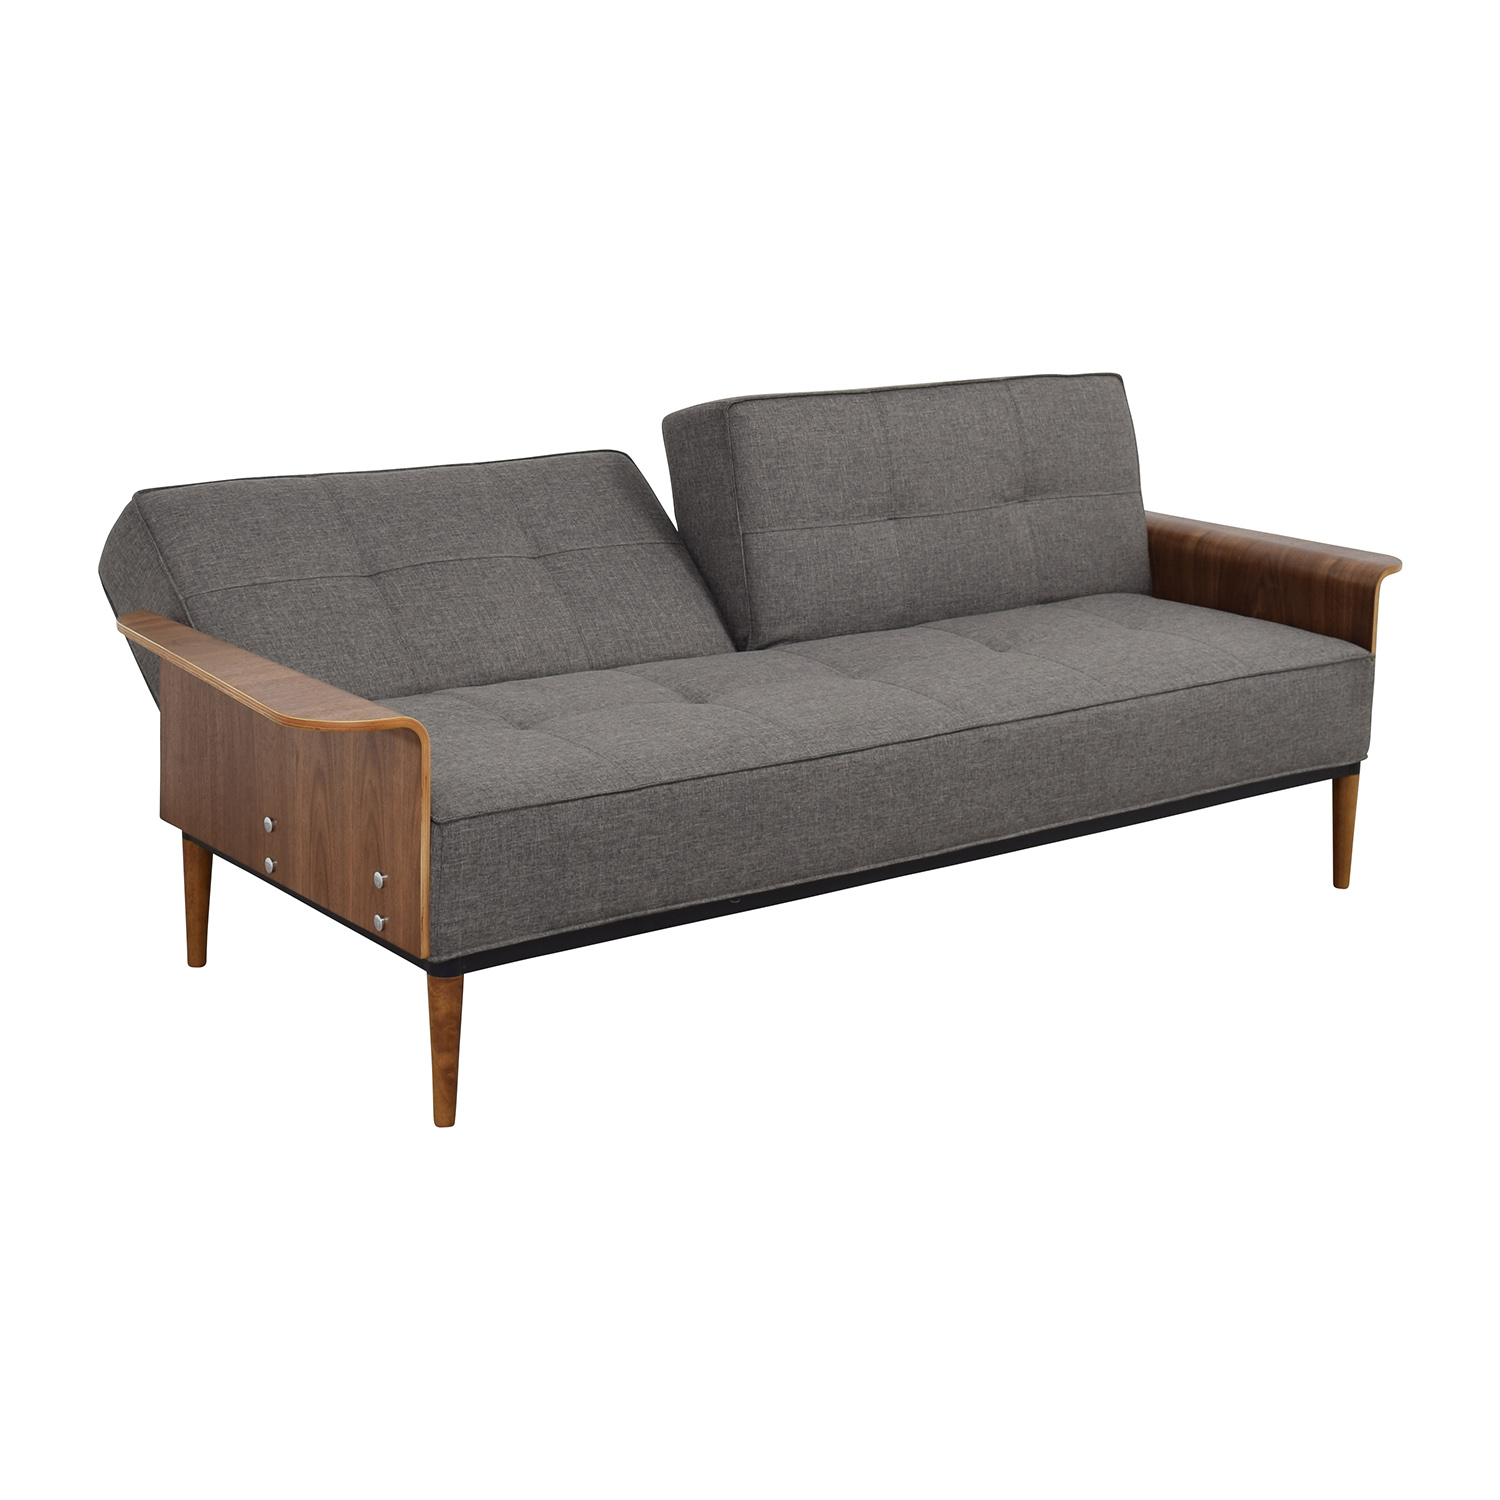 InMod Bjorg Tufted Dark Grey Sofabed InMod